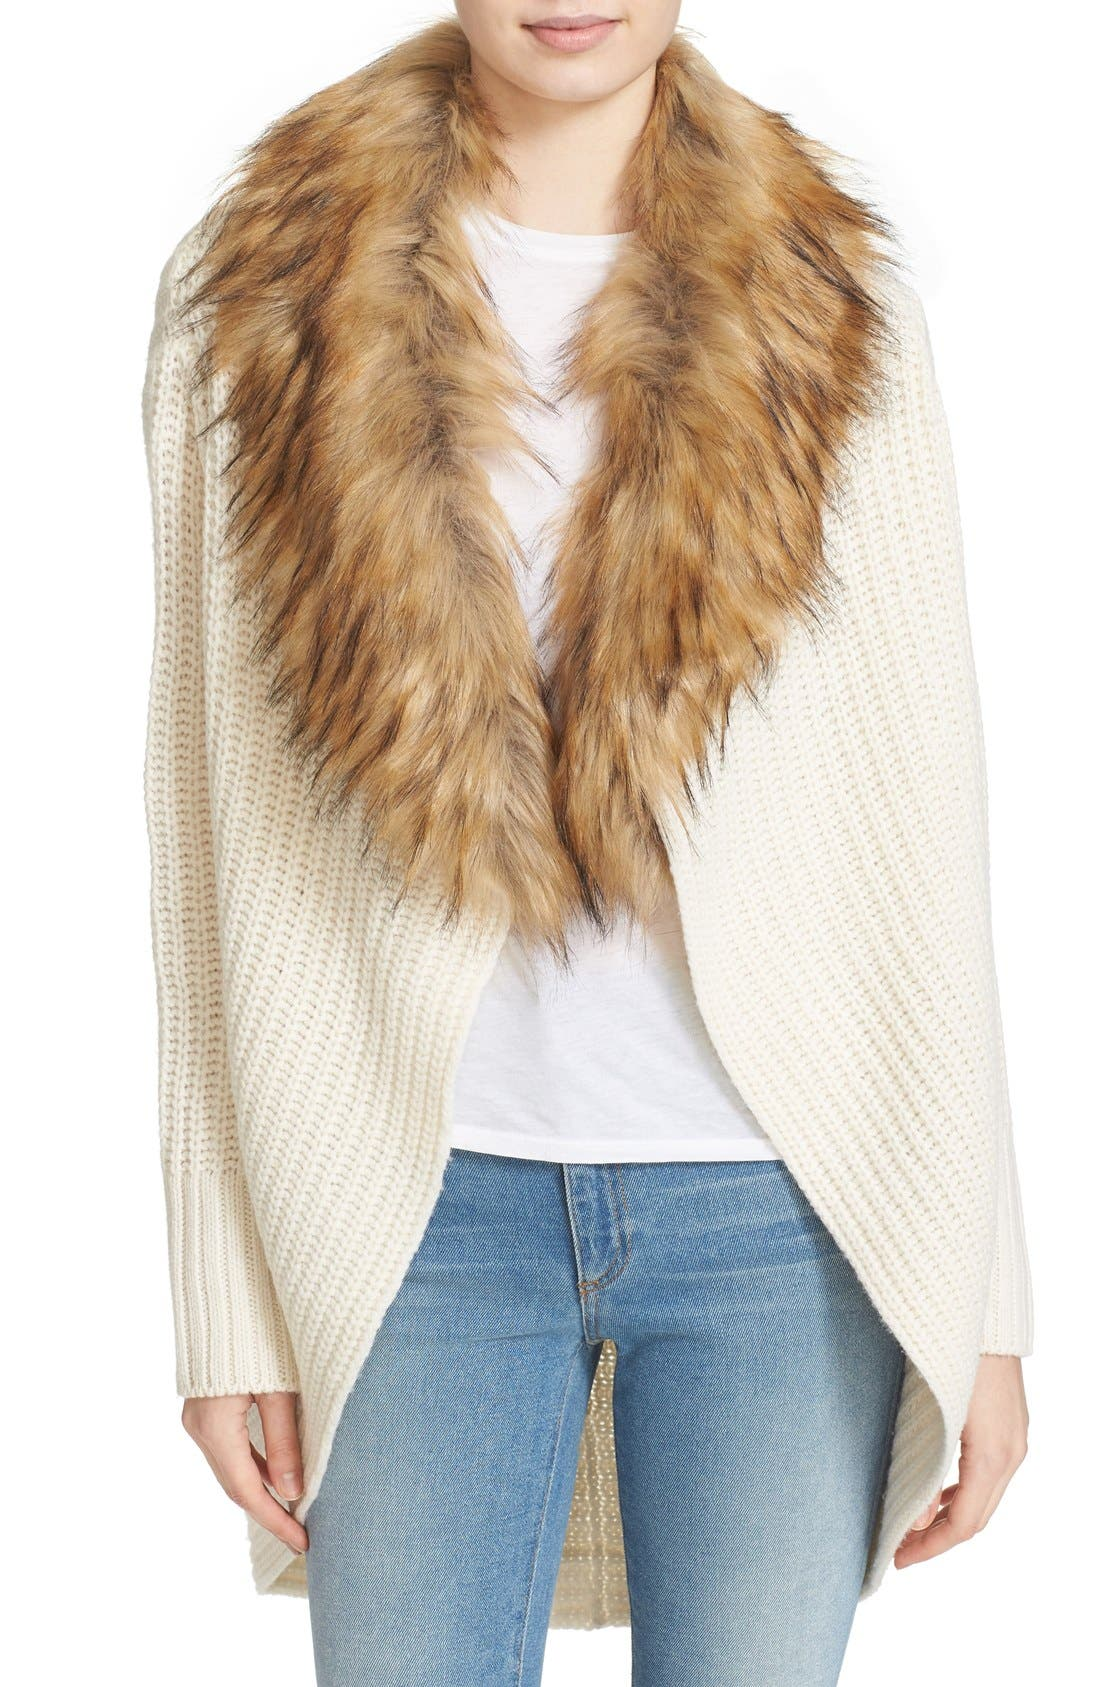 'Helma' Wool & Yak Cardigan with Faux Fur Collar, Main, color, 120